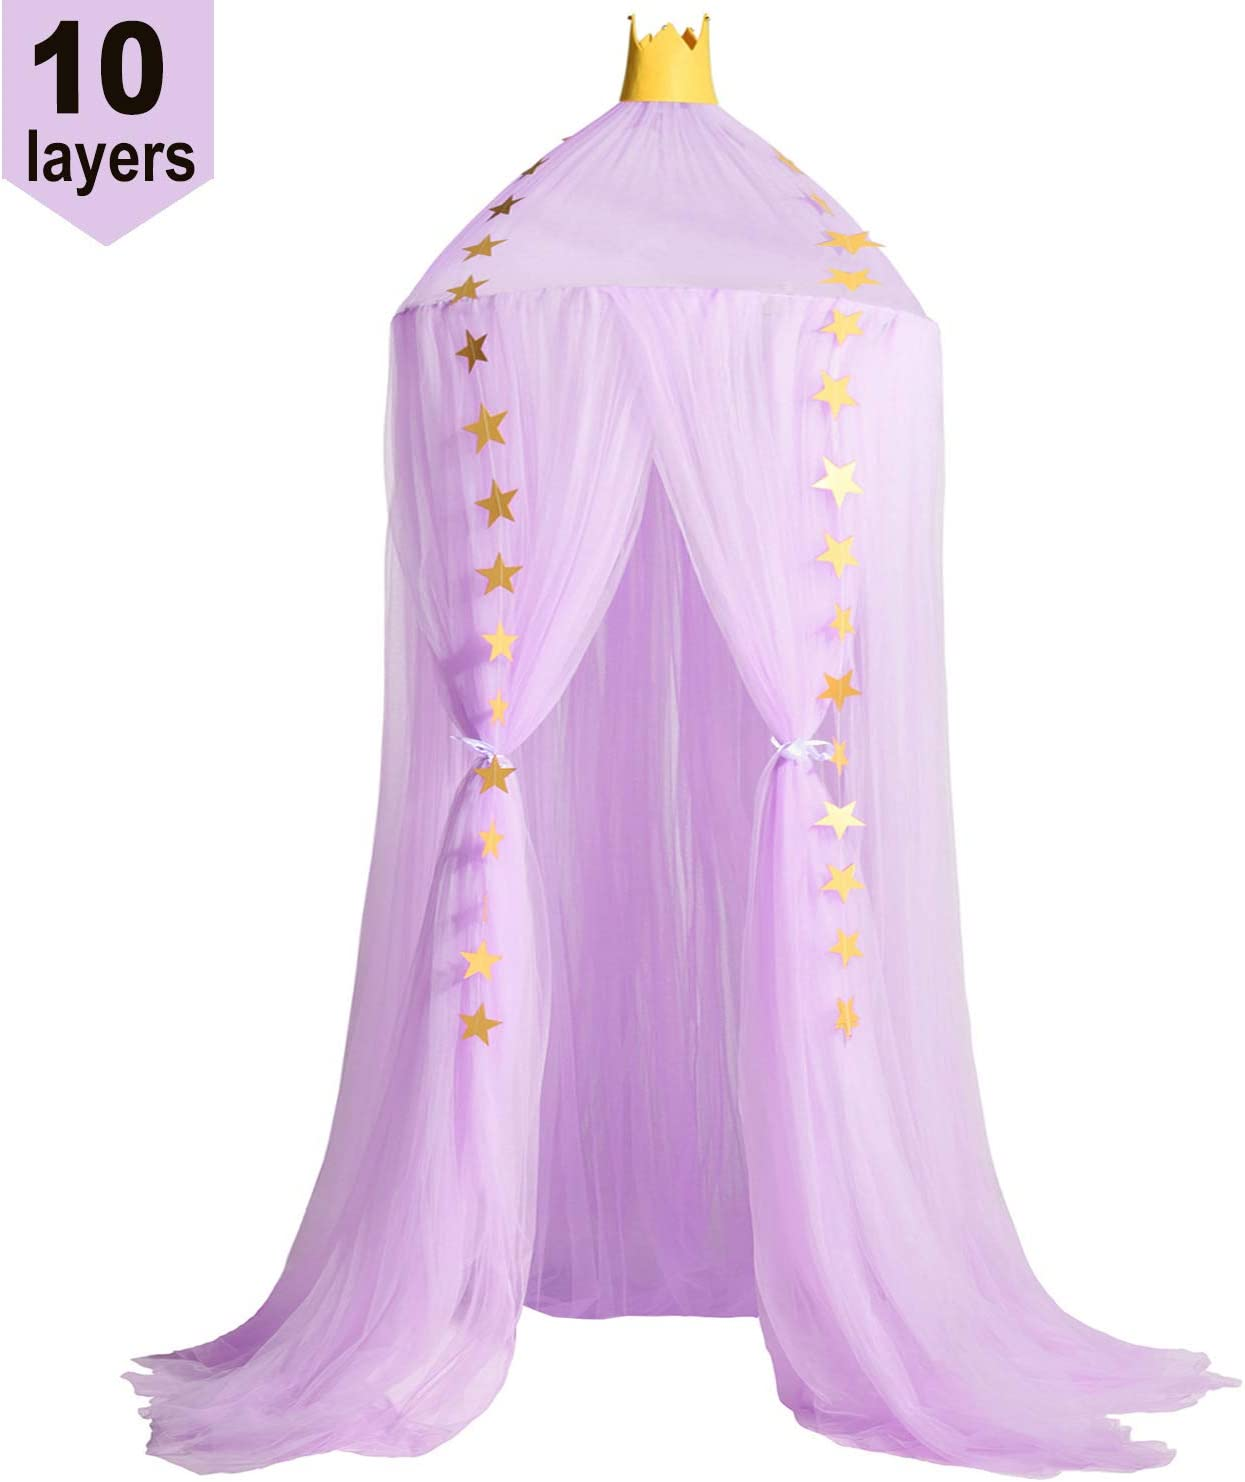 Jolitac Princess Bed Canopy for Kids Room Decor Round Lace Mosquito Net Play Tent Baby Beding Canopys Yarn Girls Dome Netting Curtains Girls Games House Pink Castle (Purple)